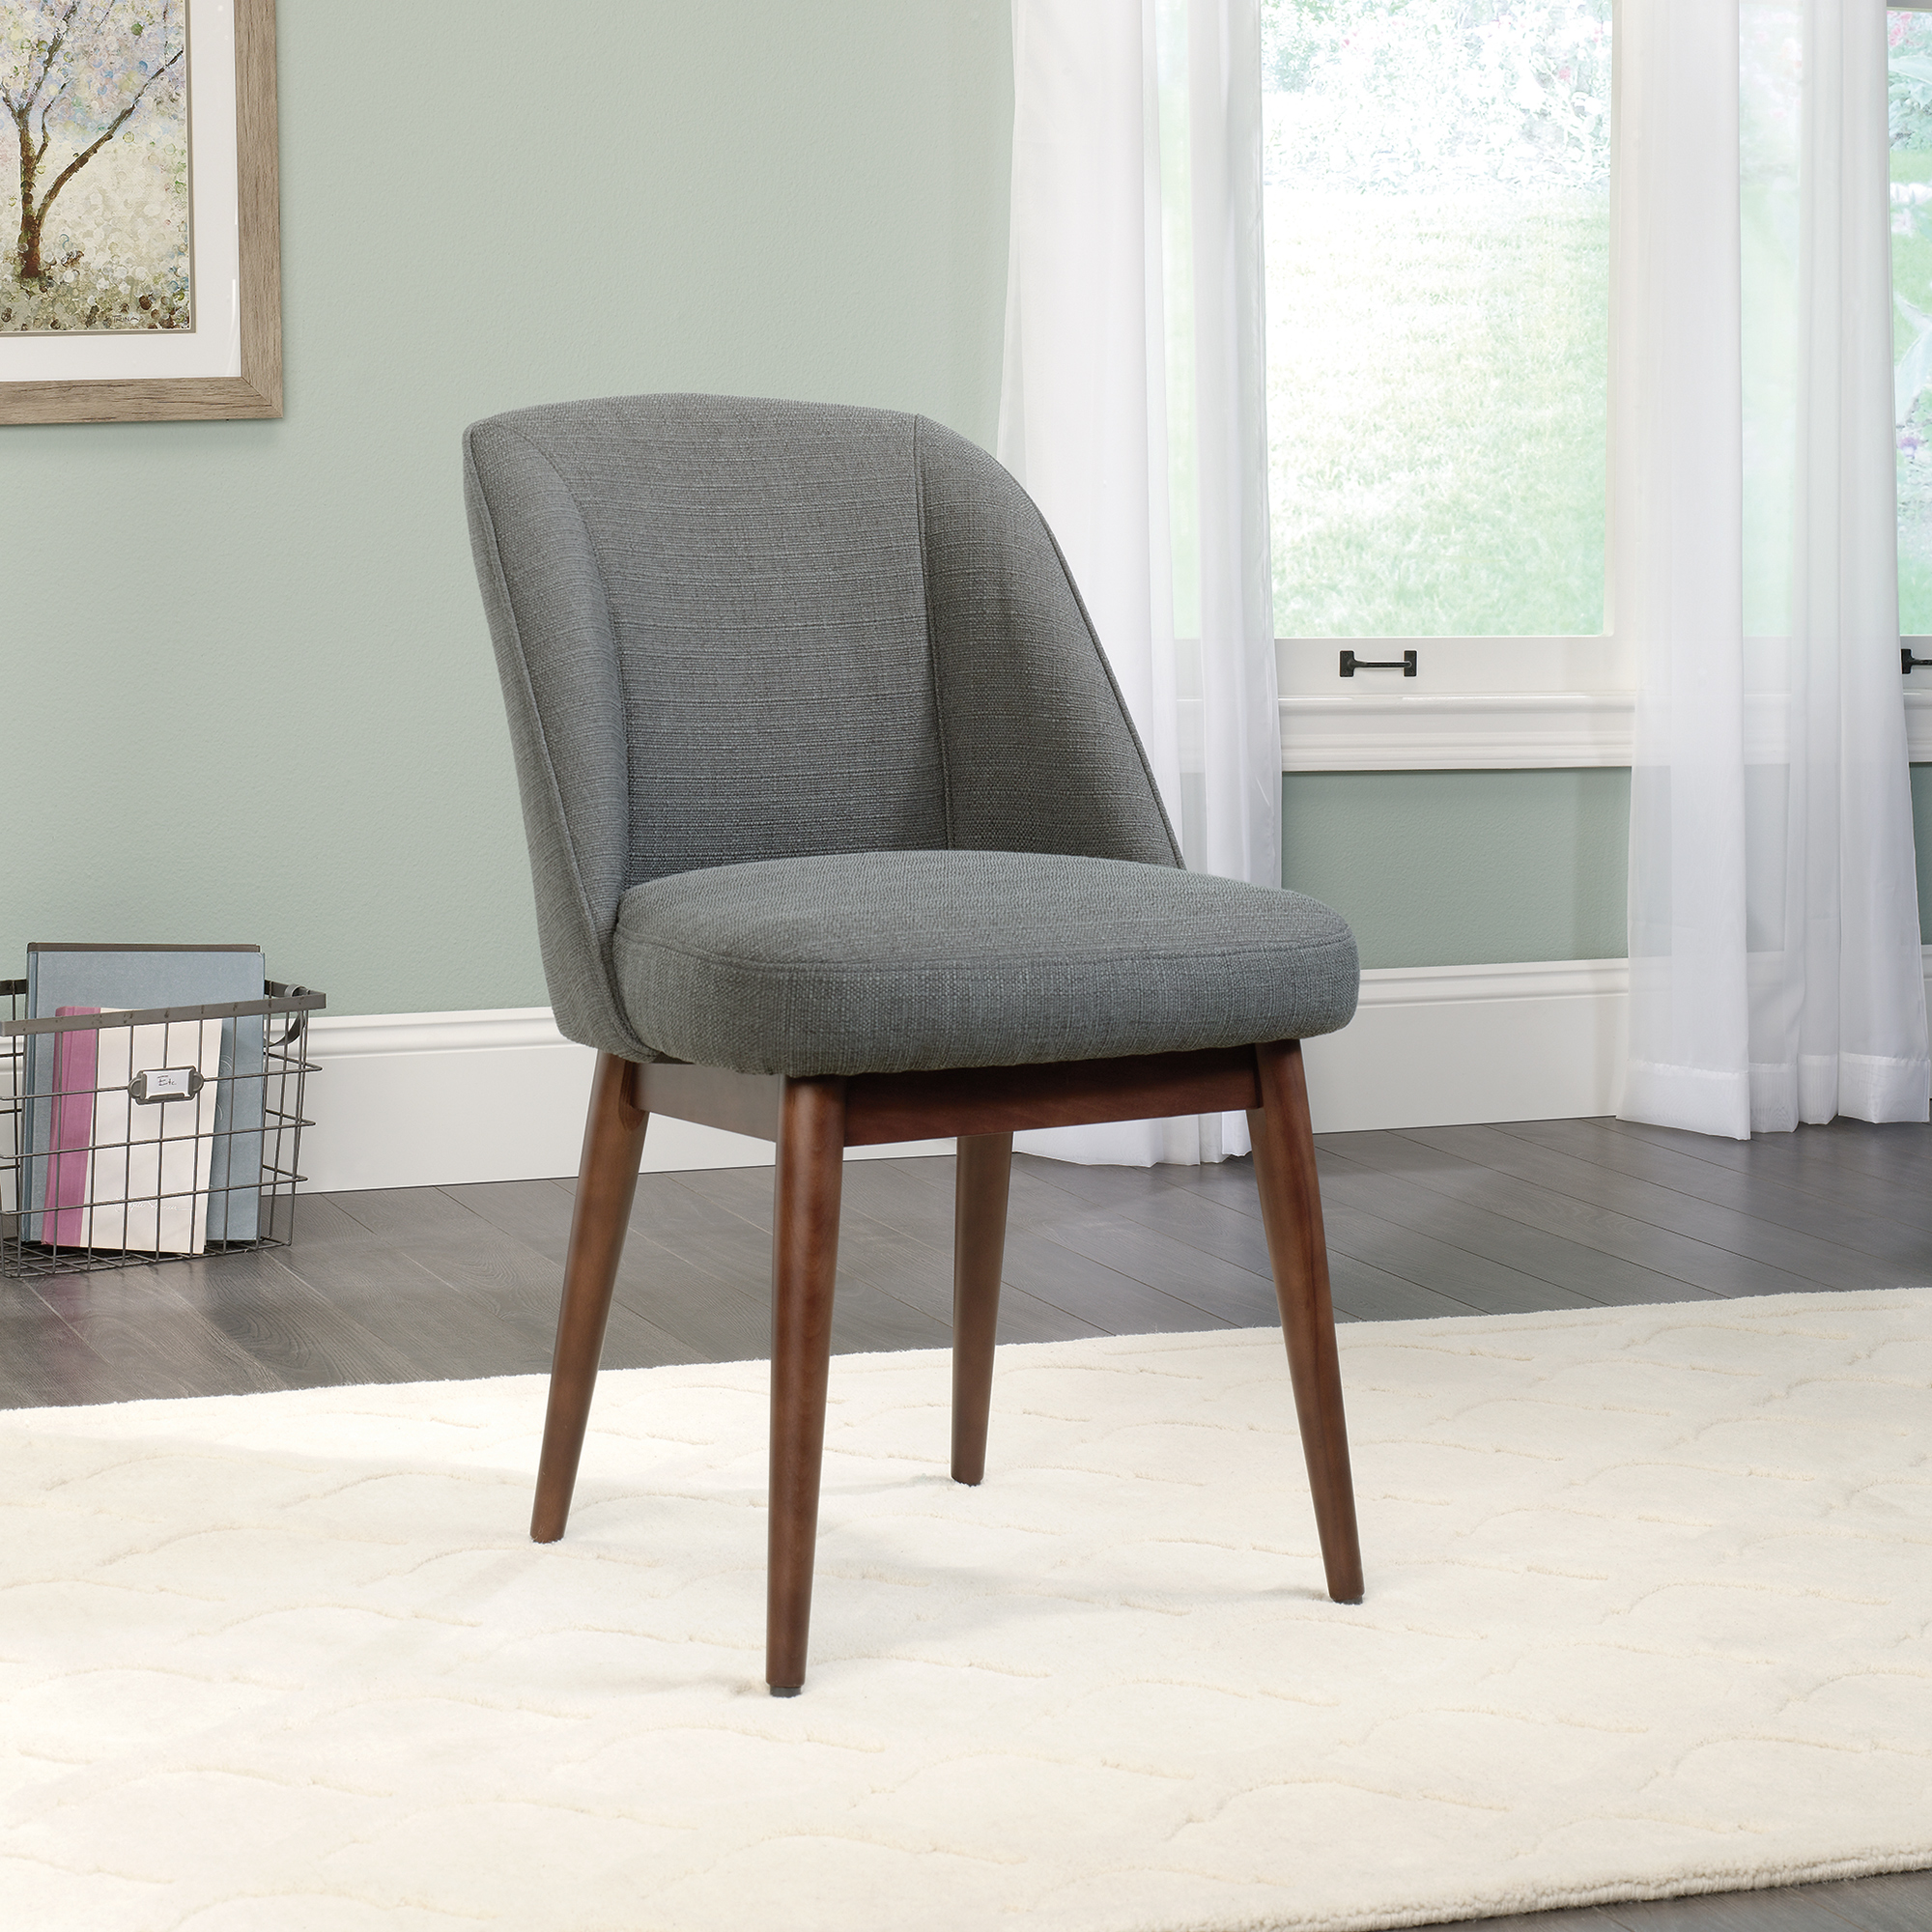 sauder select luna accent chair chairs with table oval dining cover decorative storage cabinets furniture pottery barn glass top coffee bungee target uma console bunnings bench